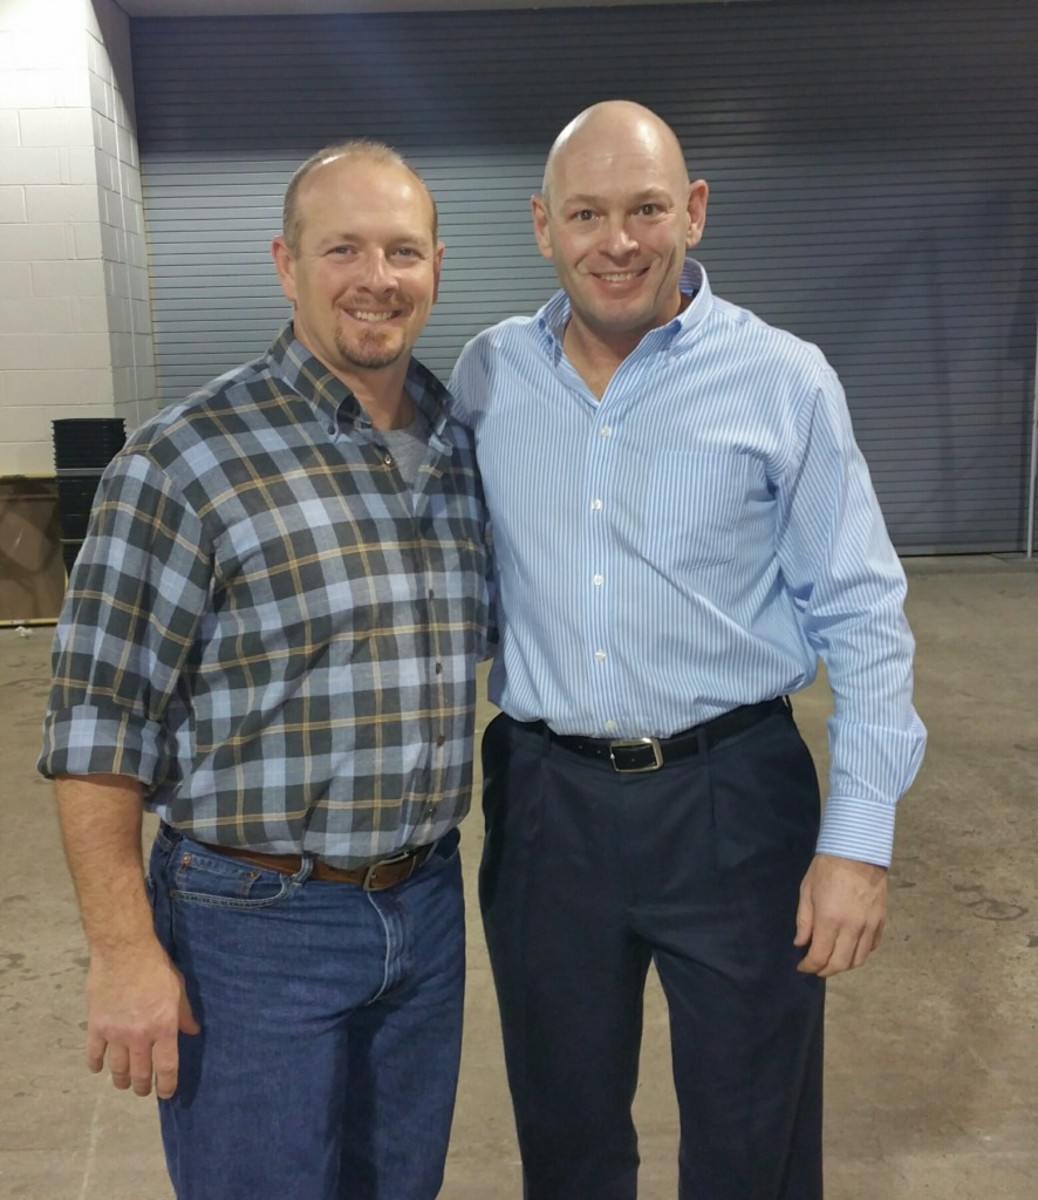 Billy Wagner, left, with the author during the February Tristar show in Houston.